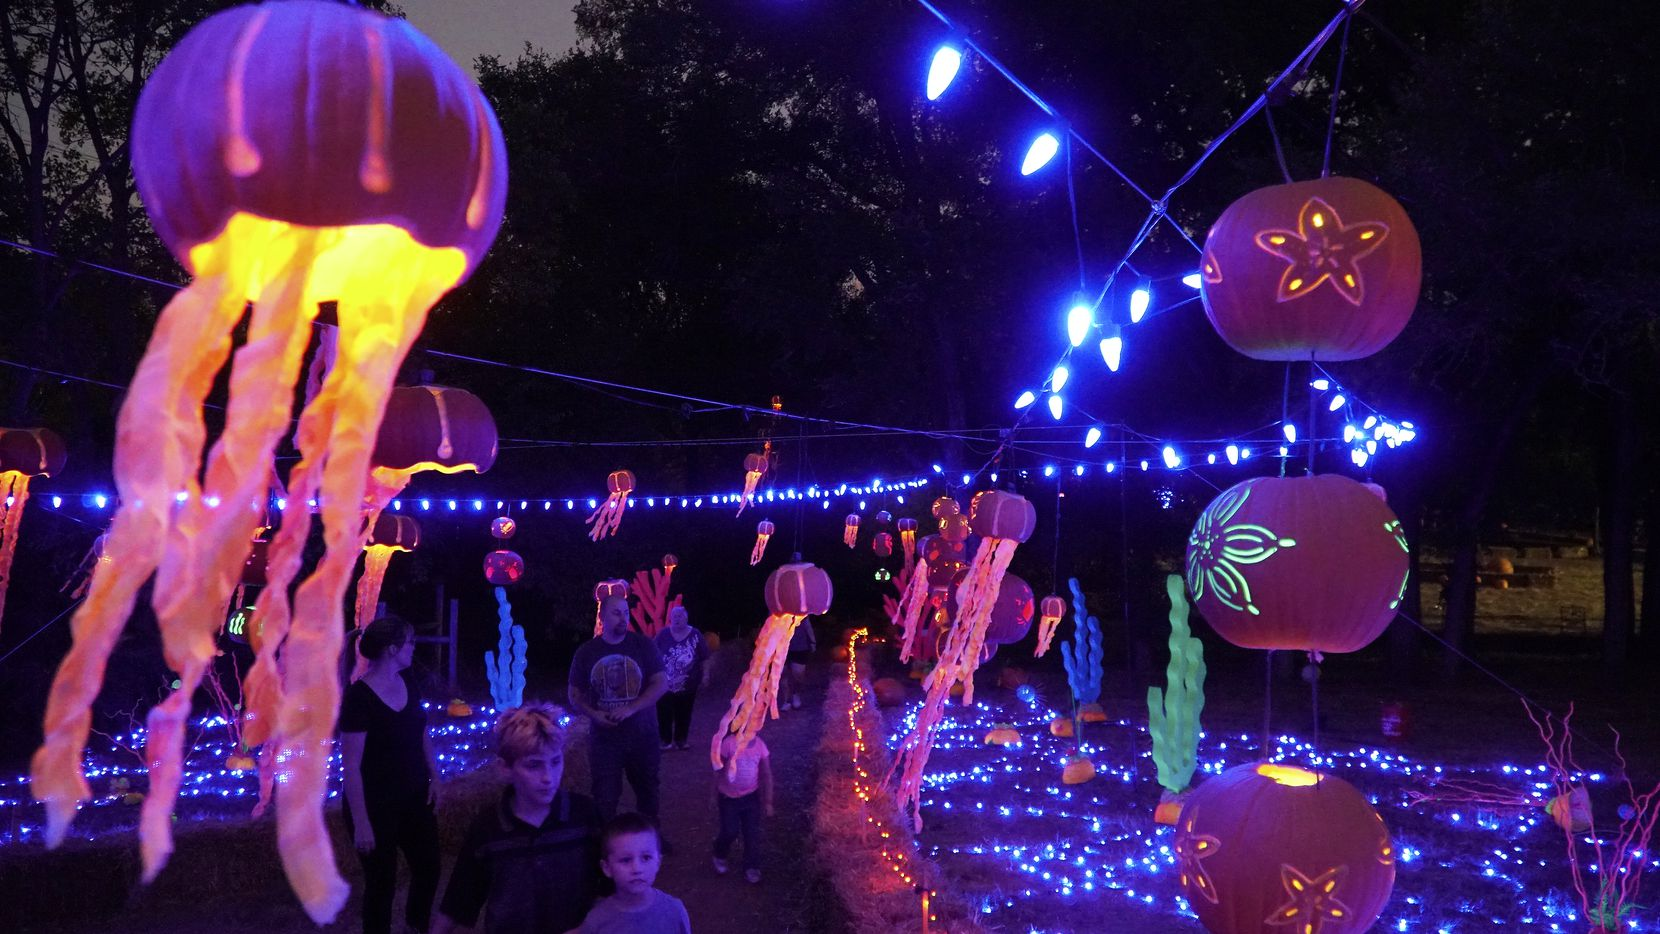 Guest stroll through the Pumpkin Reef display at Pumpkin Nights in Arlington, Texas, on Wednesday, Oct. 9, 2019. The Halloween-themed event is open through Nov. 2, 2019.